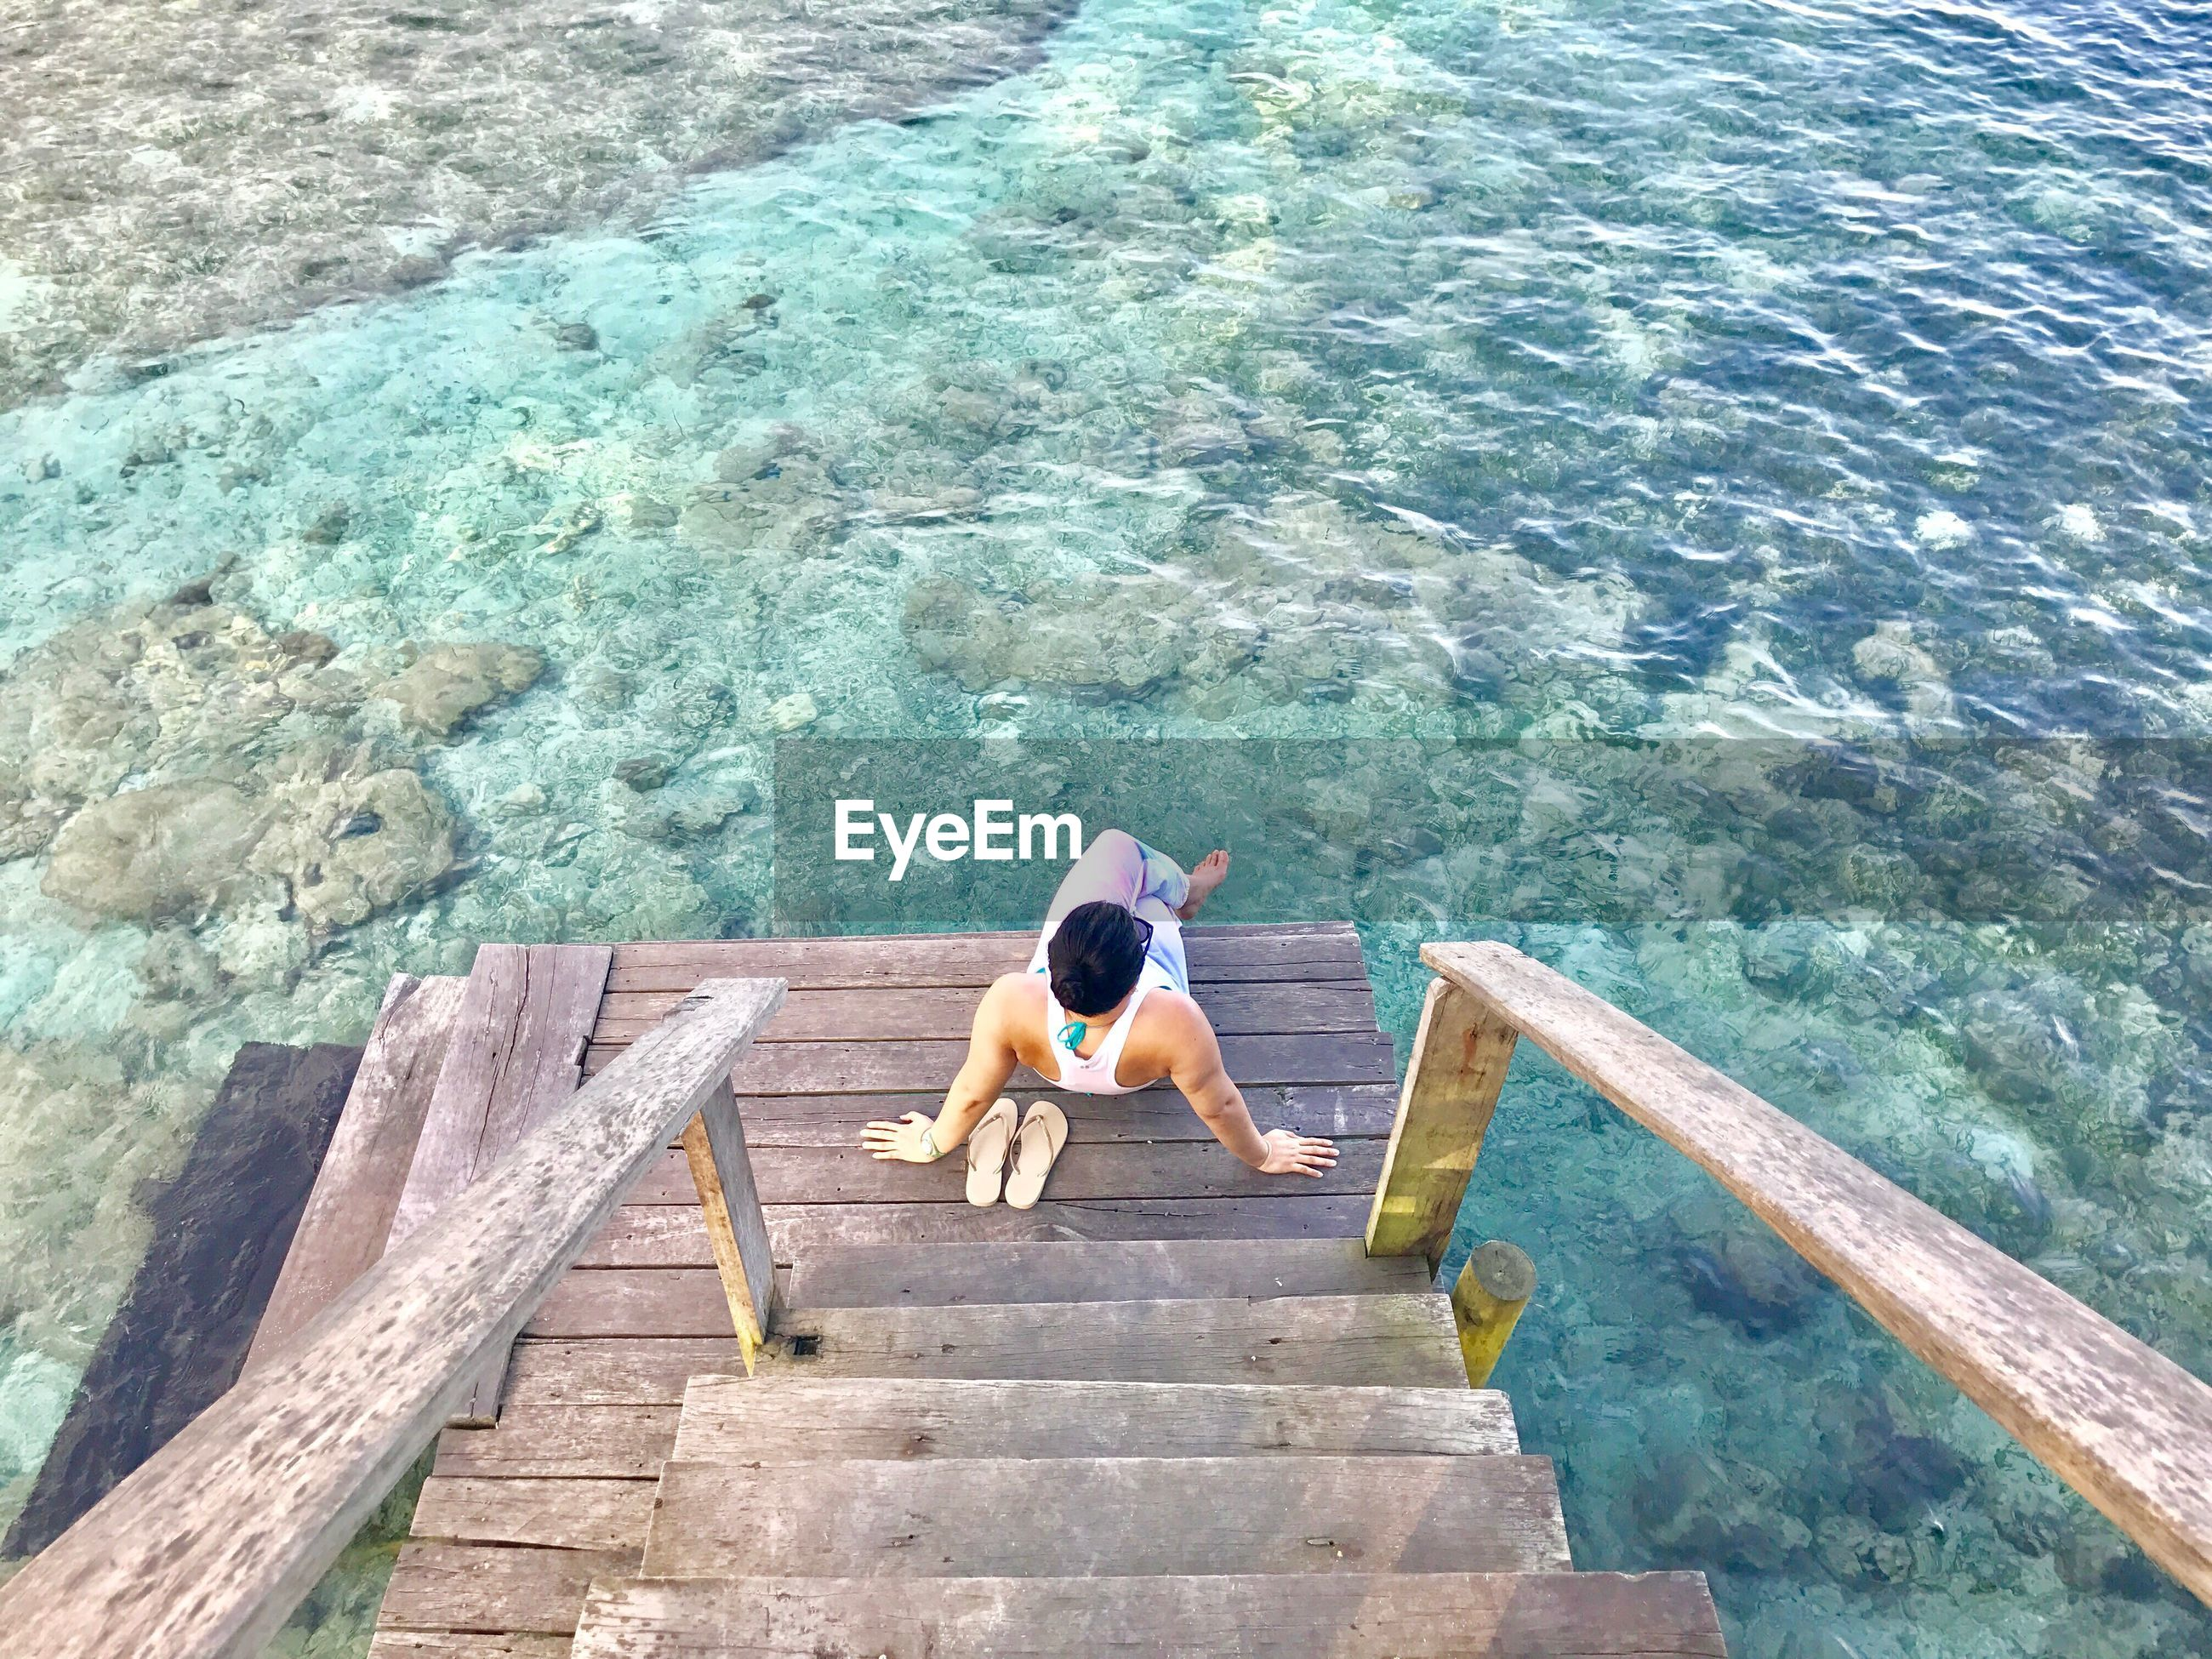 High angle view of man sitting on wooden planks by sea